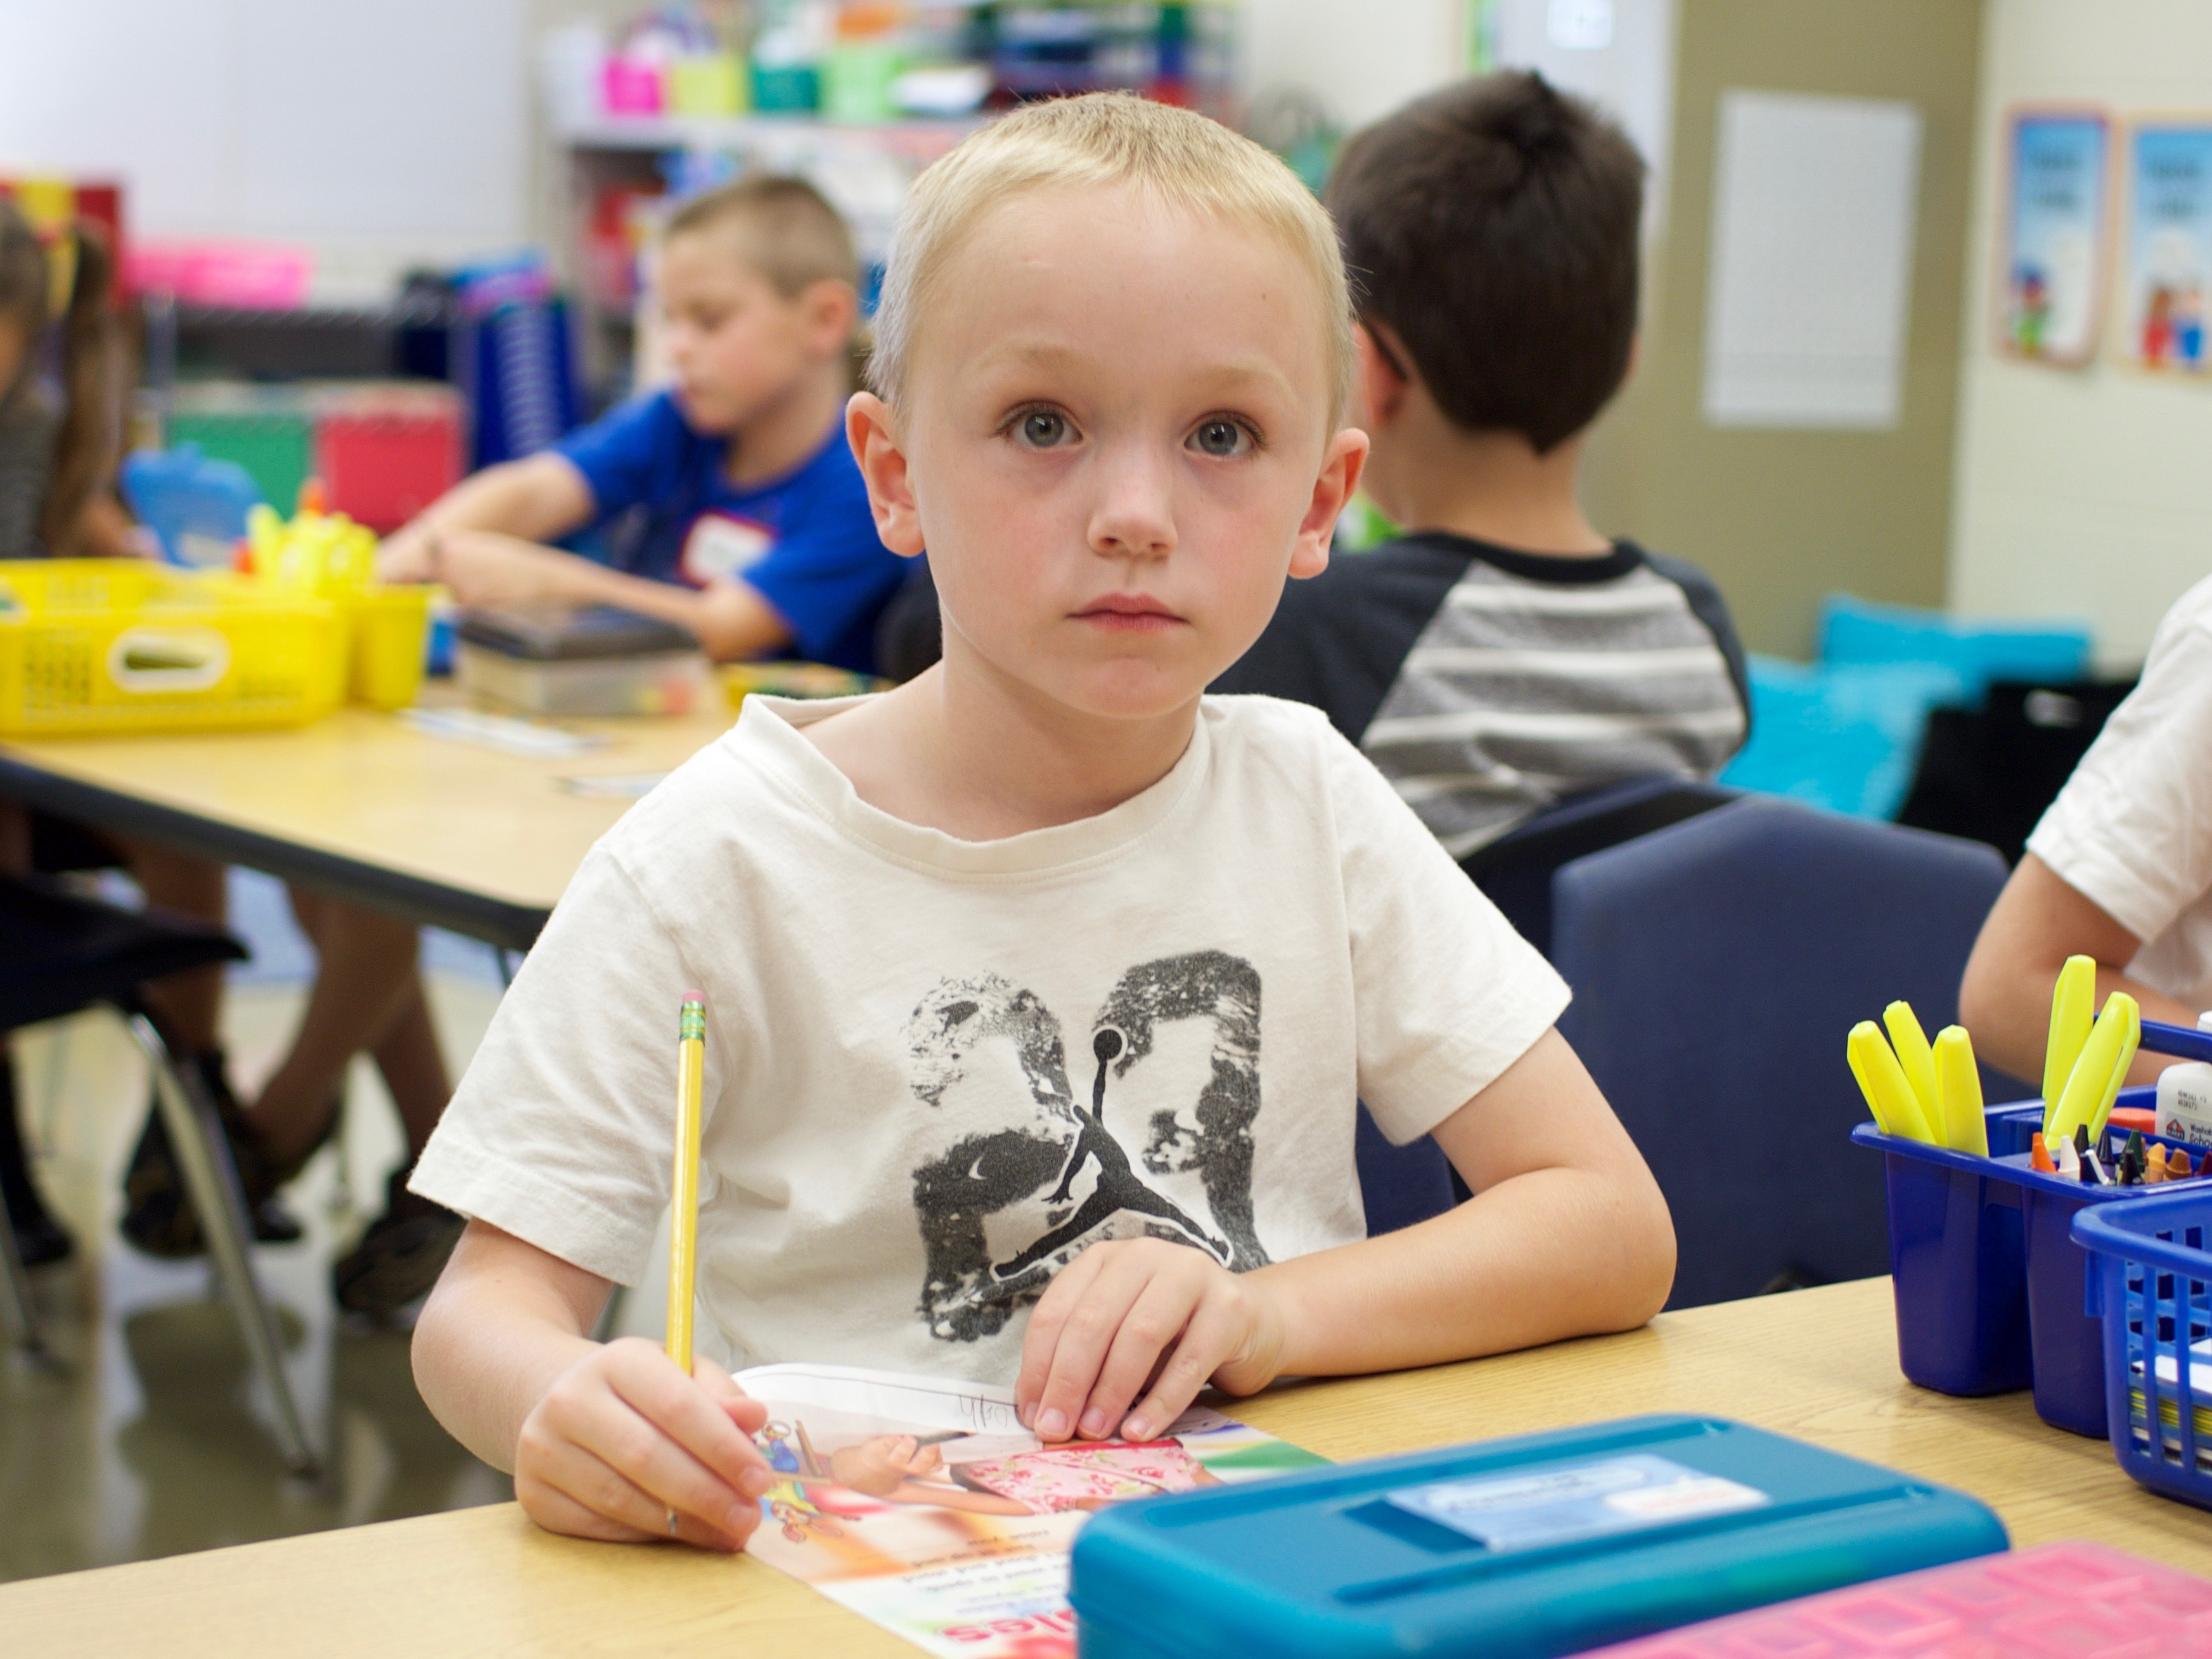 Slideshow: Boy looks at camera from desk while holding a pencil